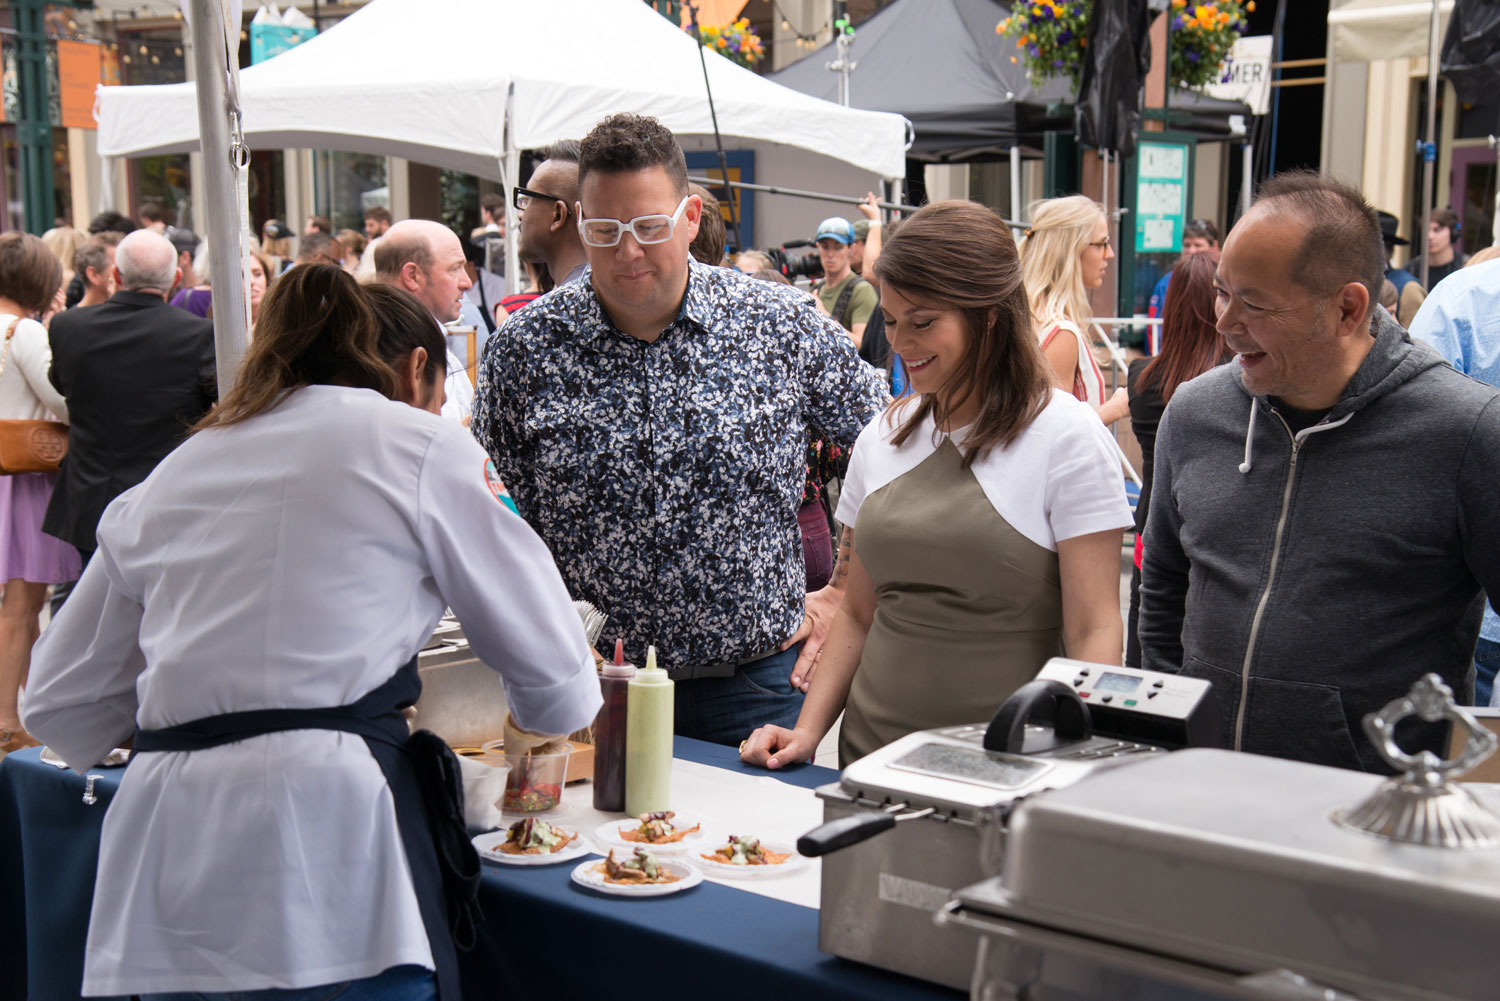 Graham Elliot and Gail Simmons in the Top Chef Season 15 premiere